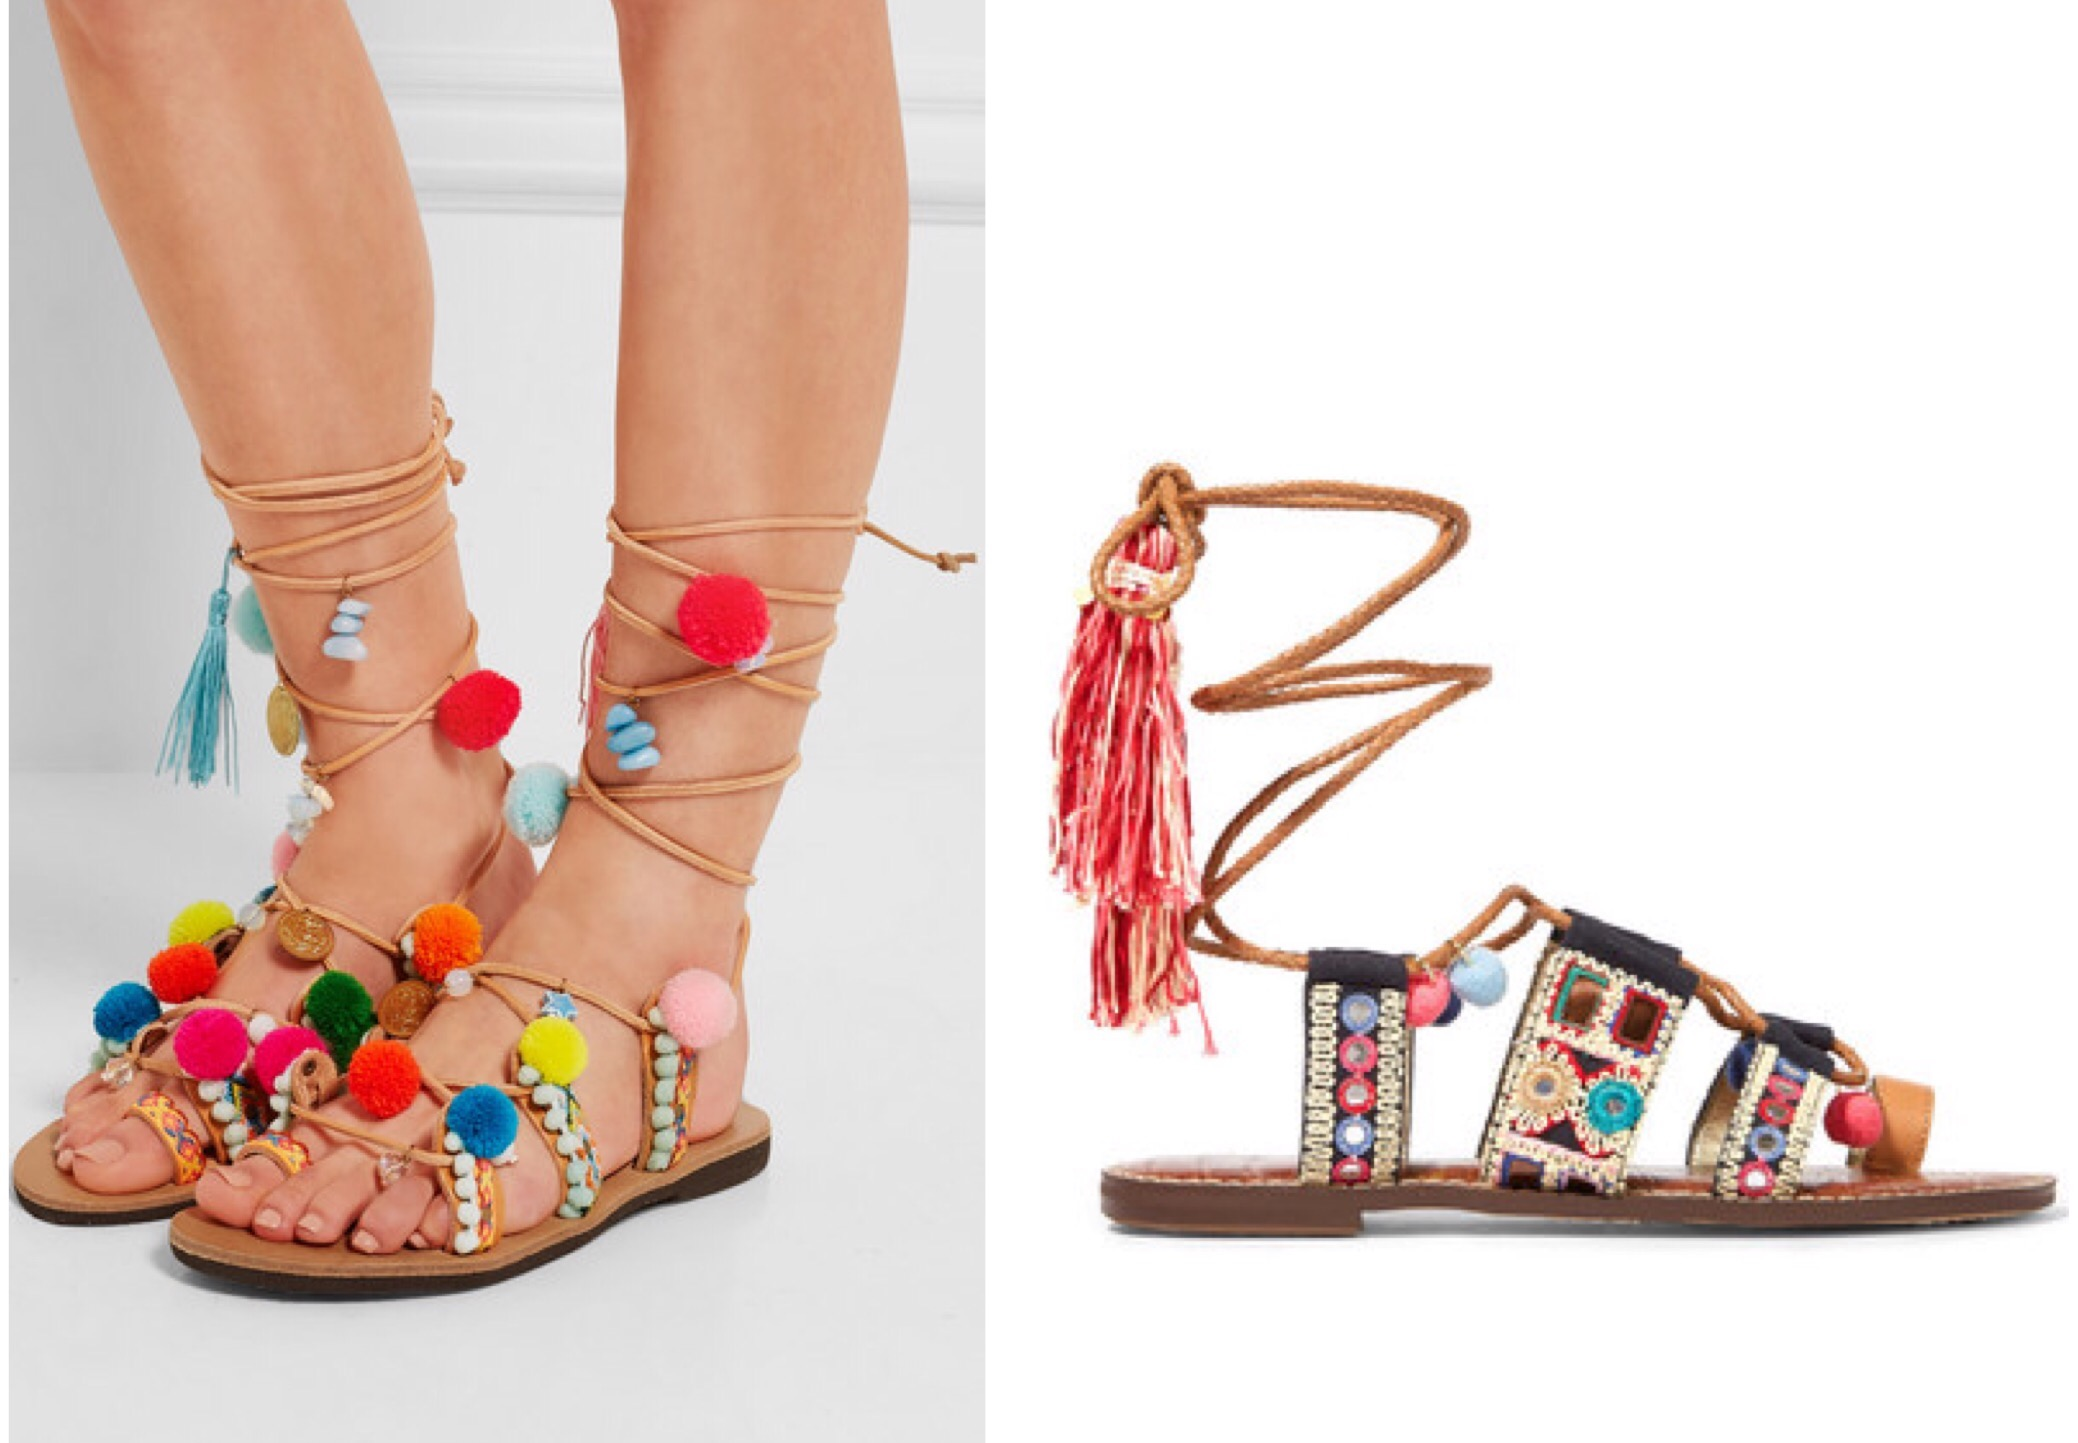 6794349934b502 What do you think of this boho-inspired sandal  Have a great Monday and  week!